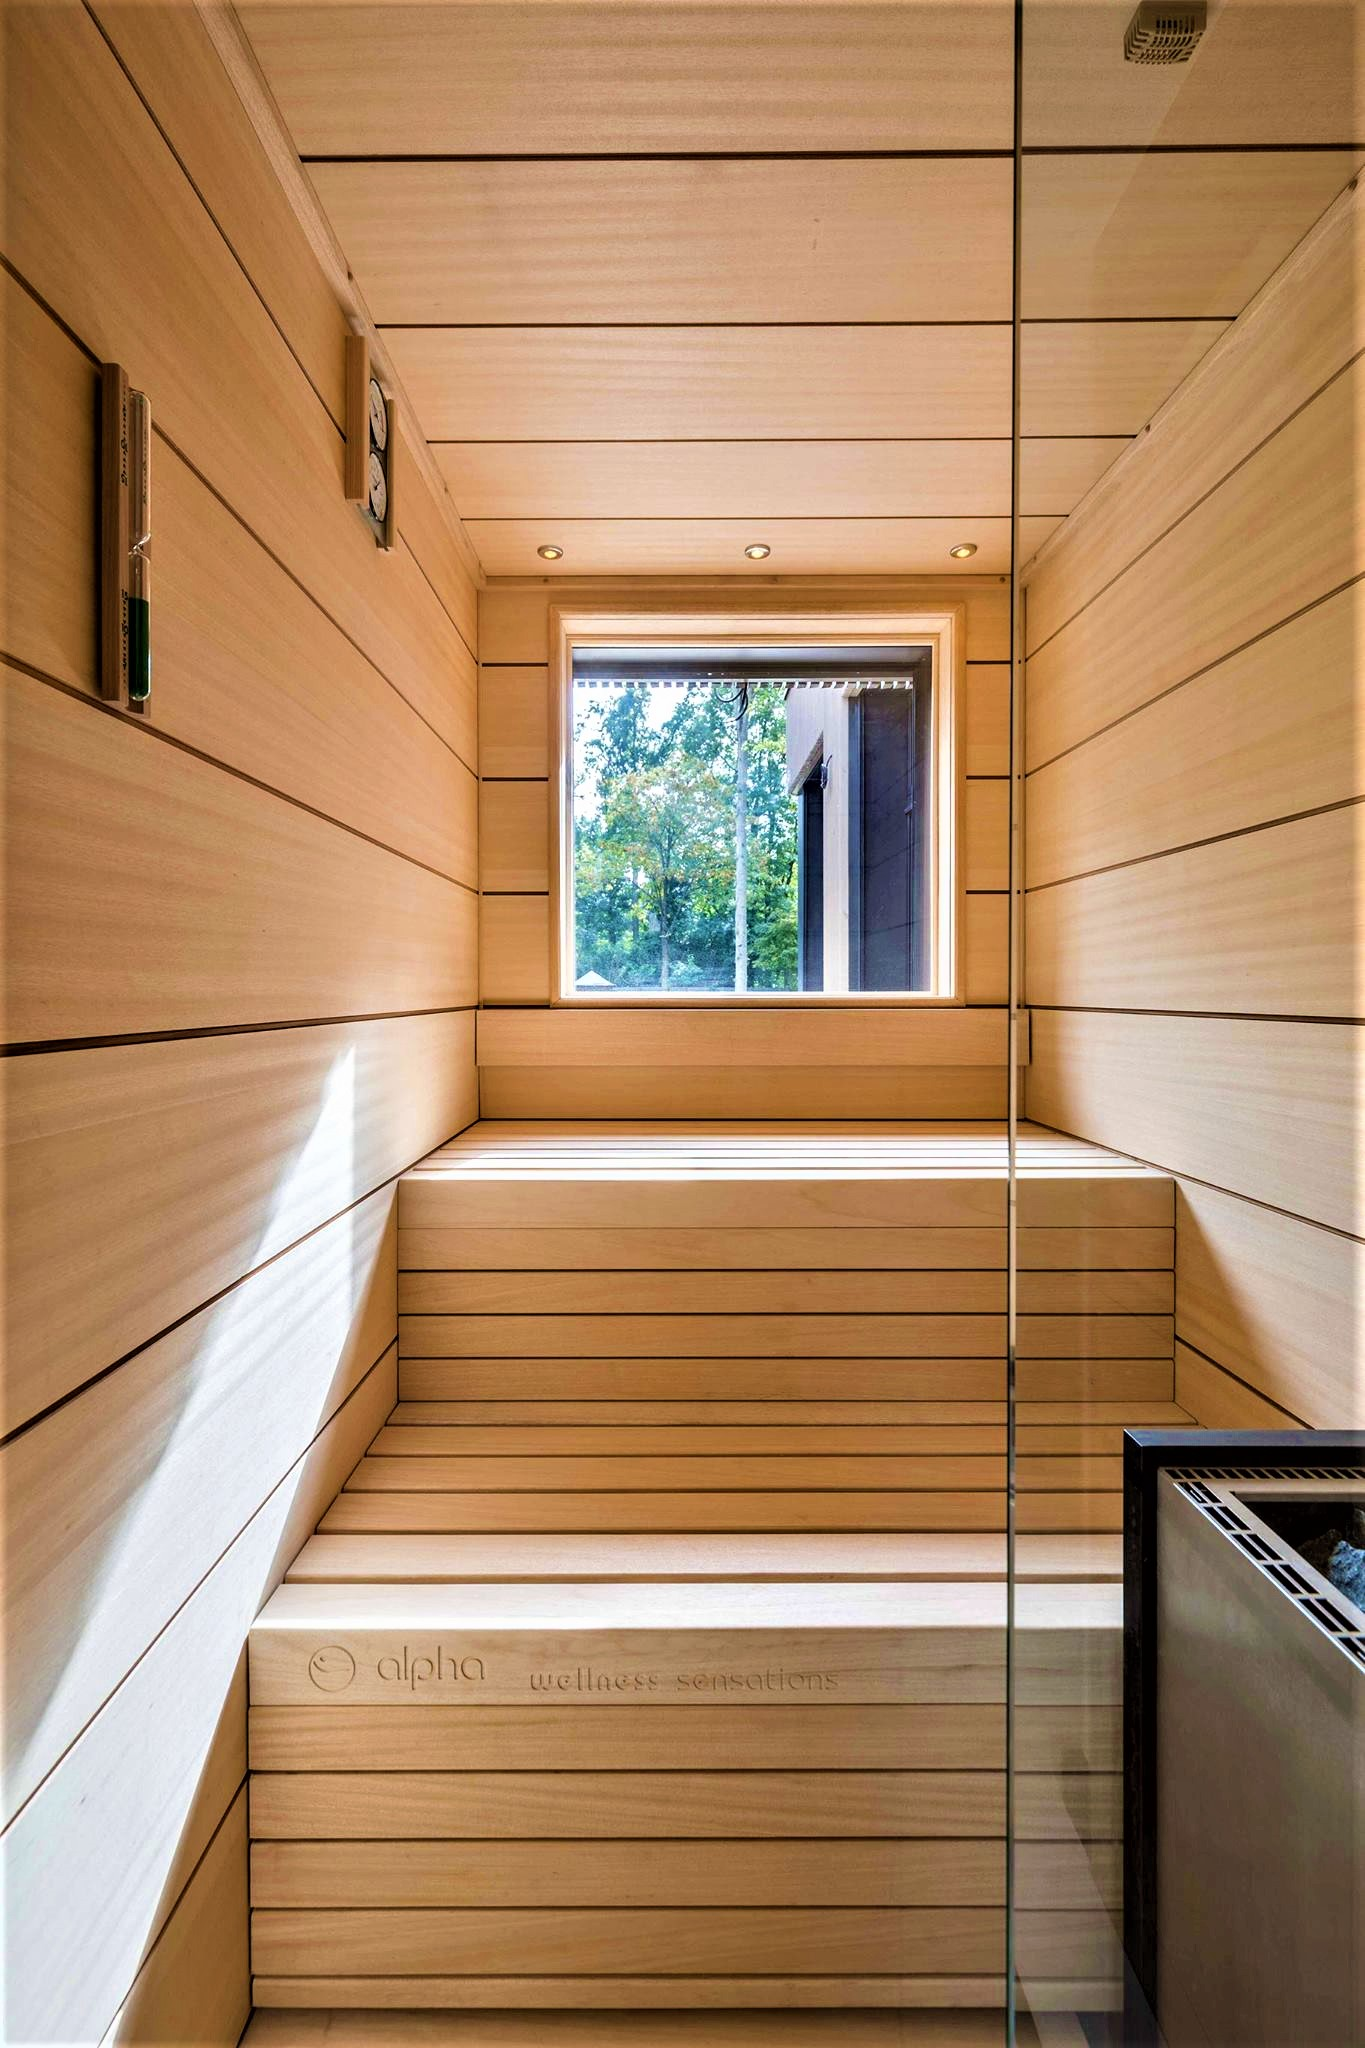 Steam Room And Traditional Sauna